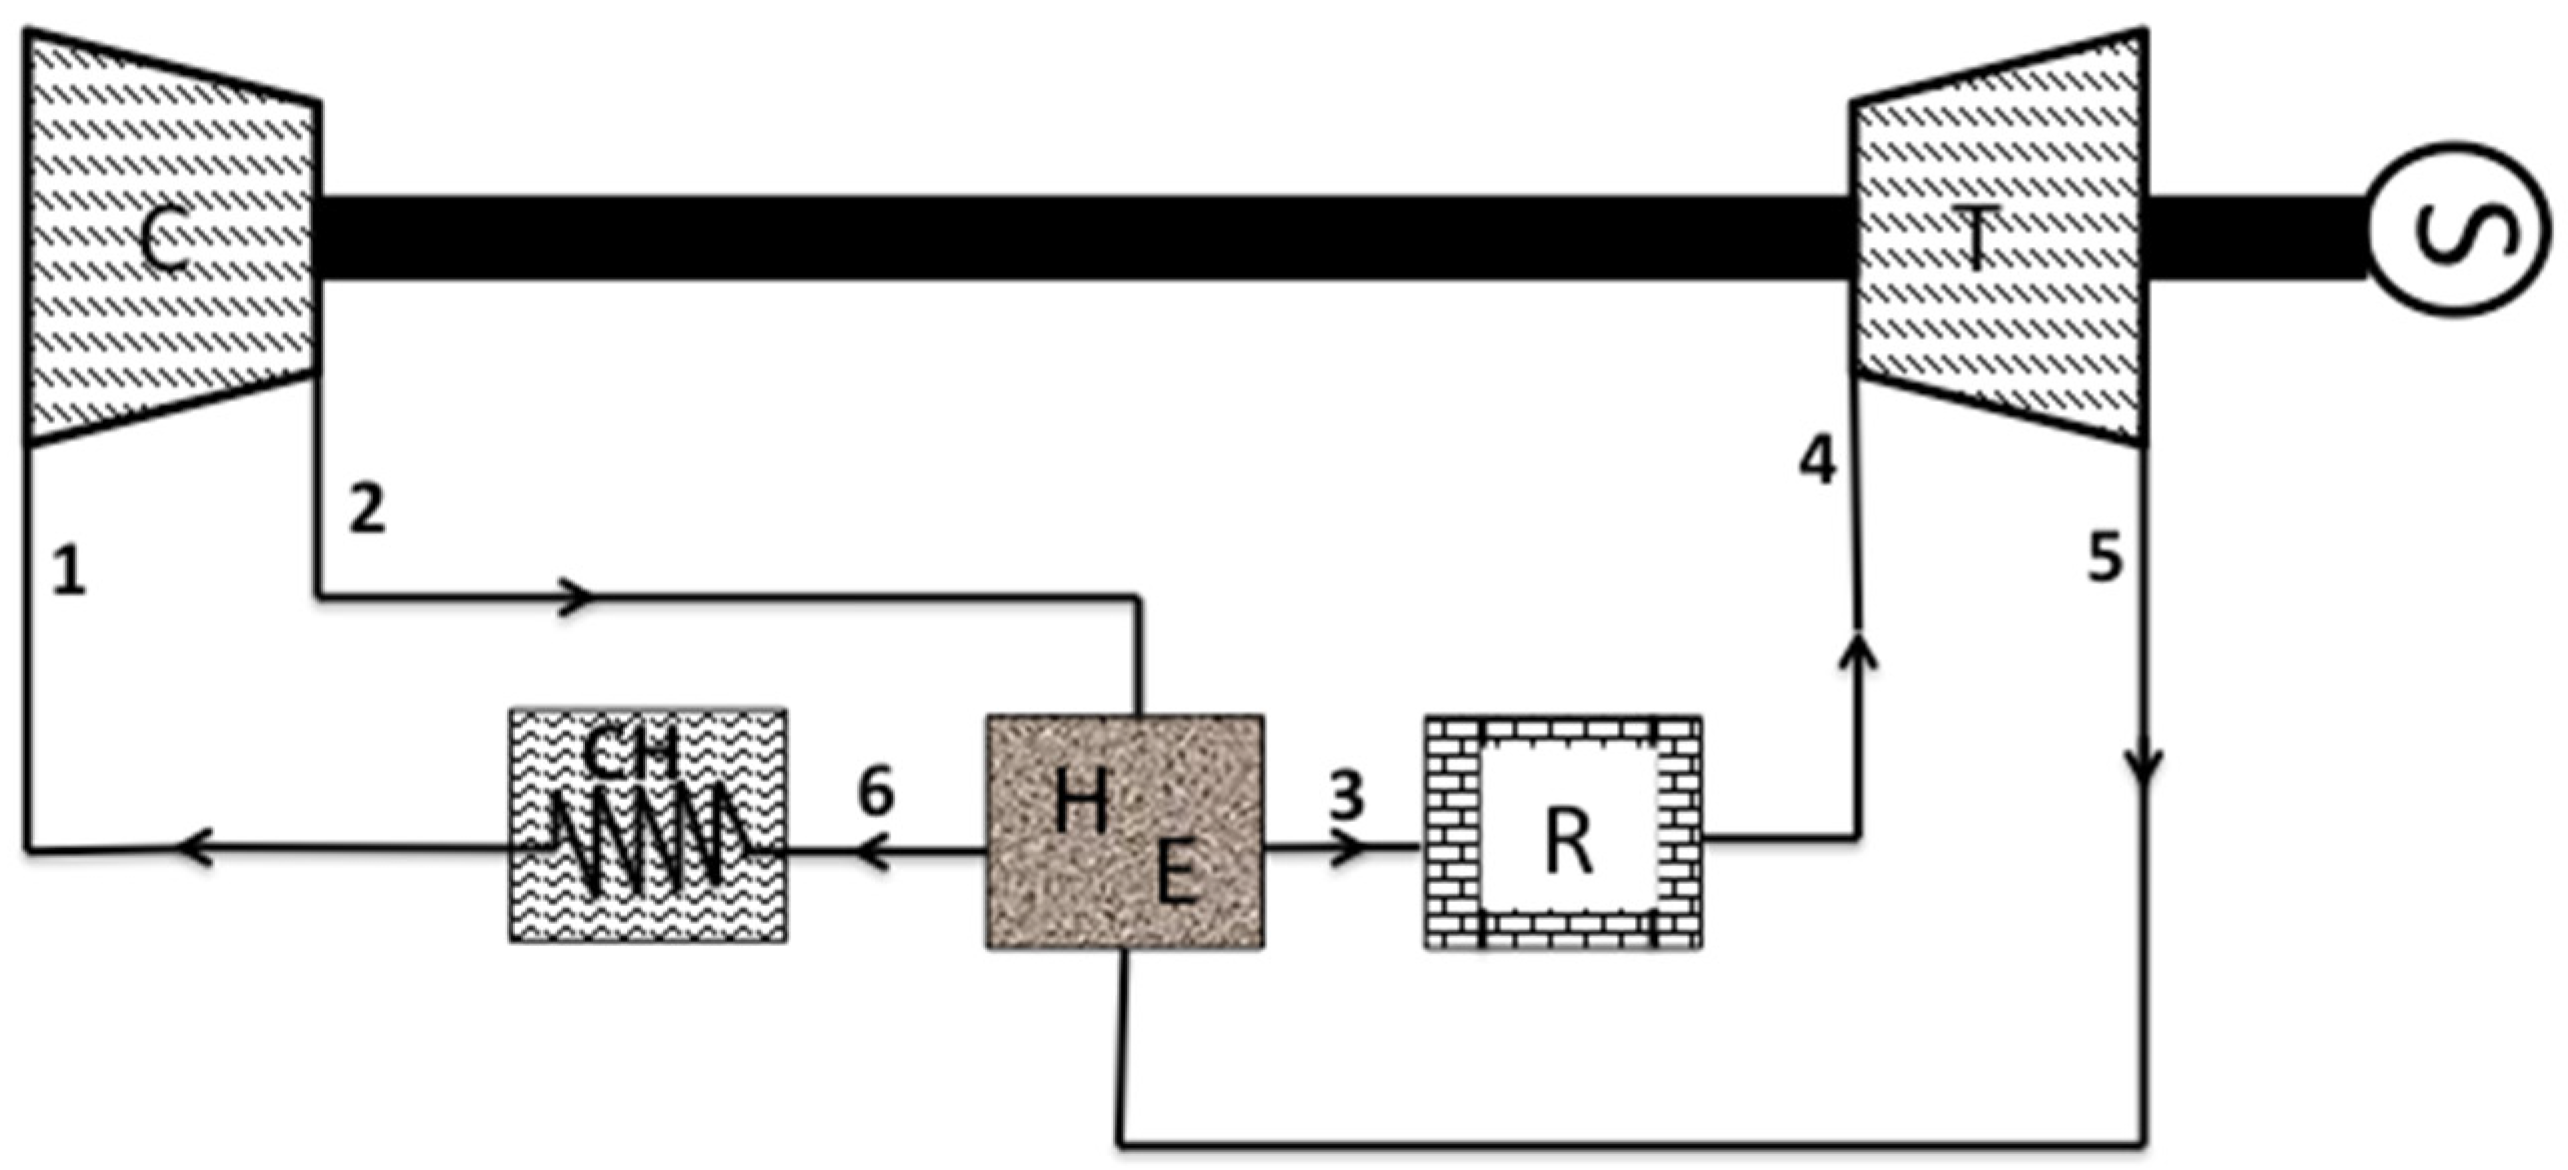 Nuclear Power Plant Simple Diagram Trusted Wiring Diagrams Labeled Schematic Reactor Model Applied Sciences Free